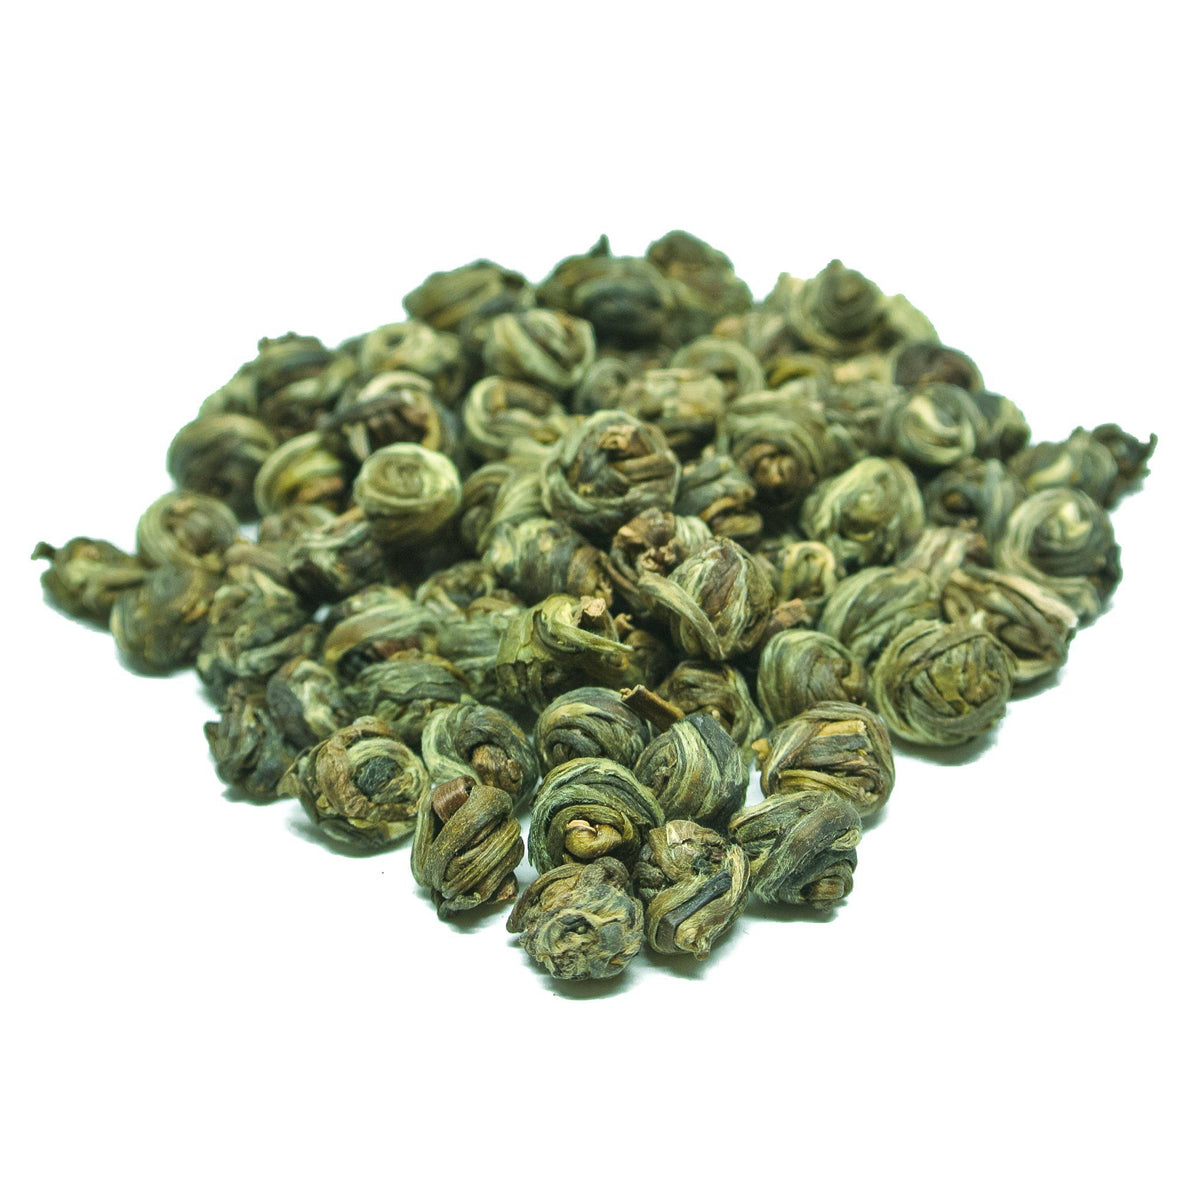 Jasmine Pearls Green Tea - VIRTUE Tea